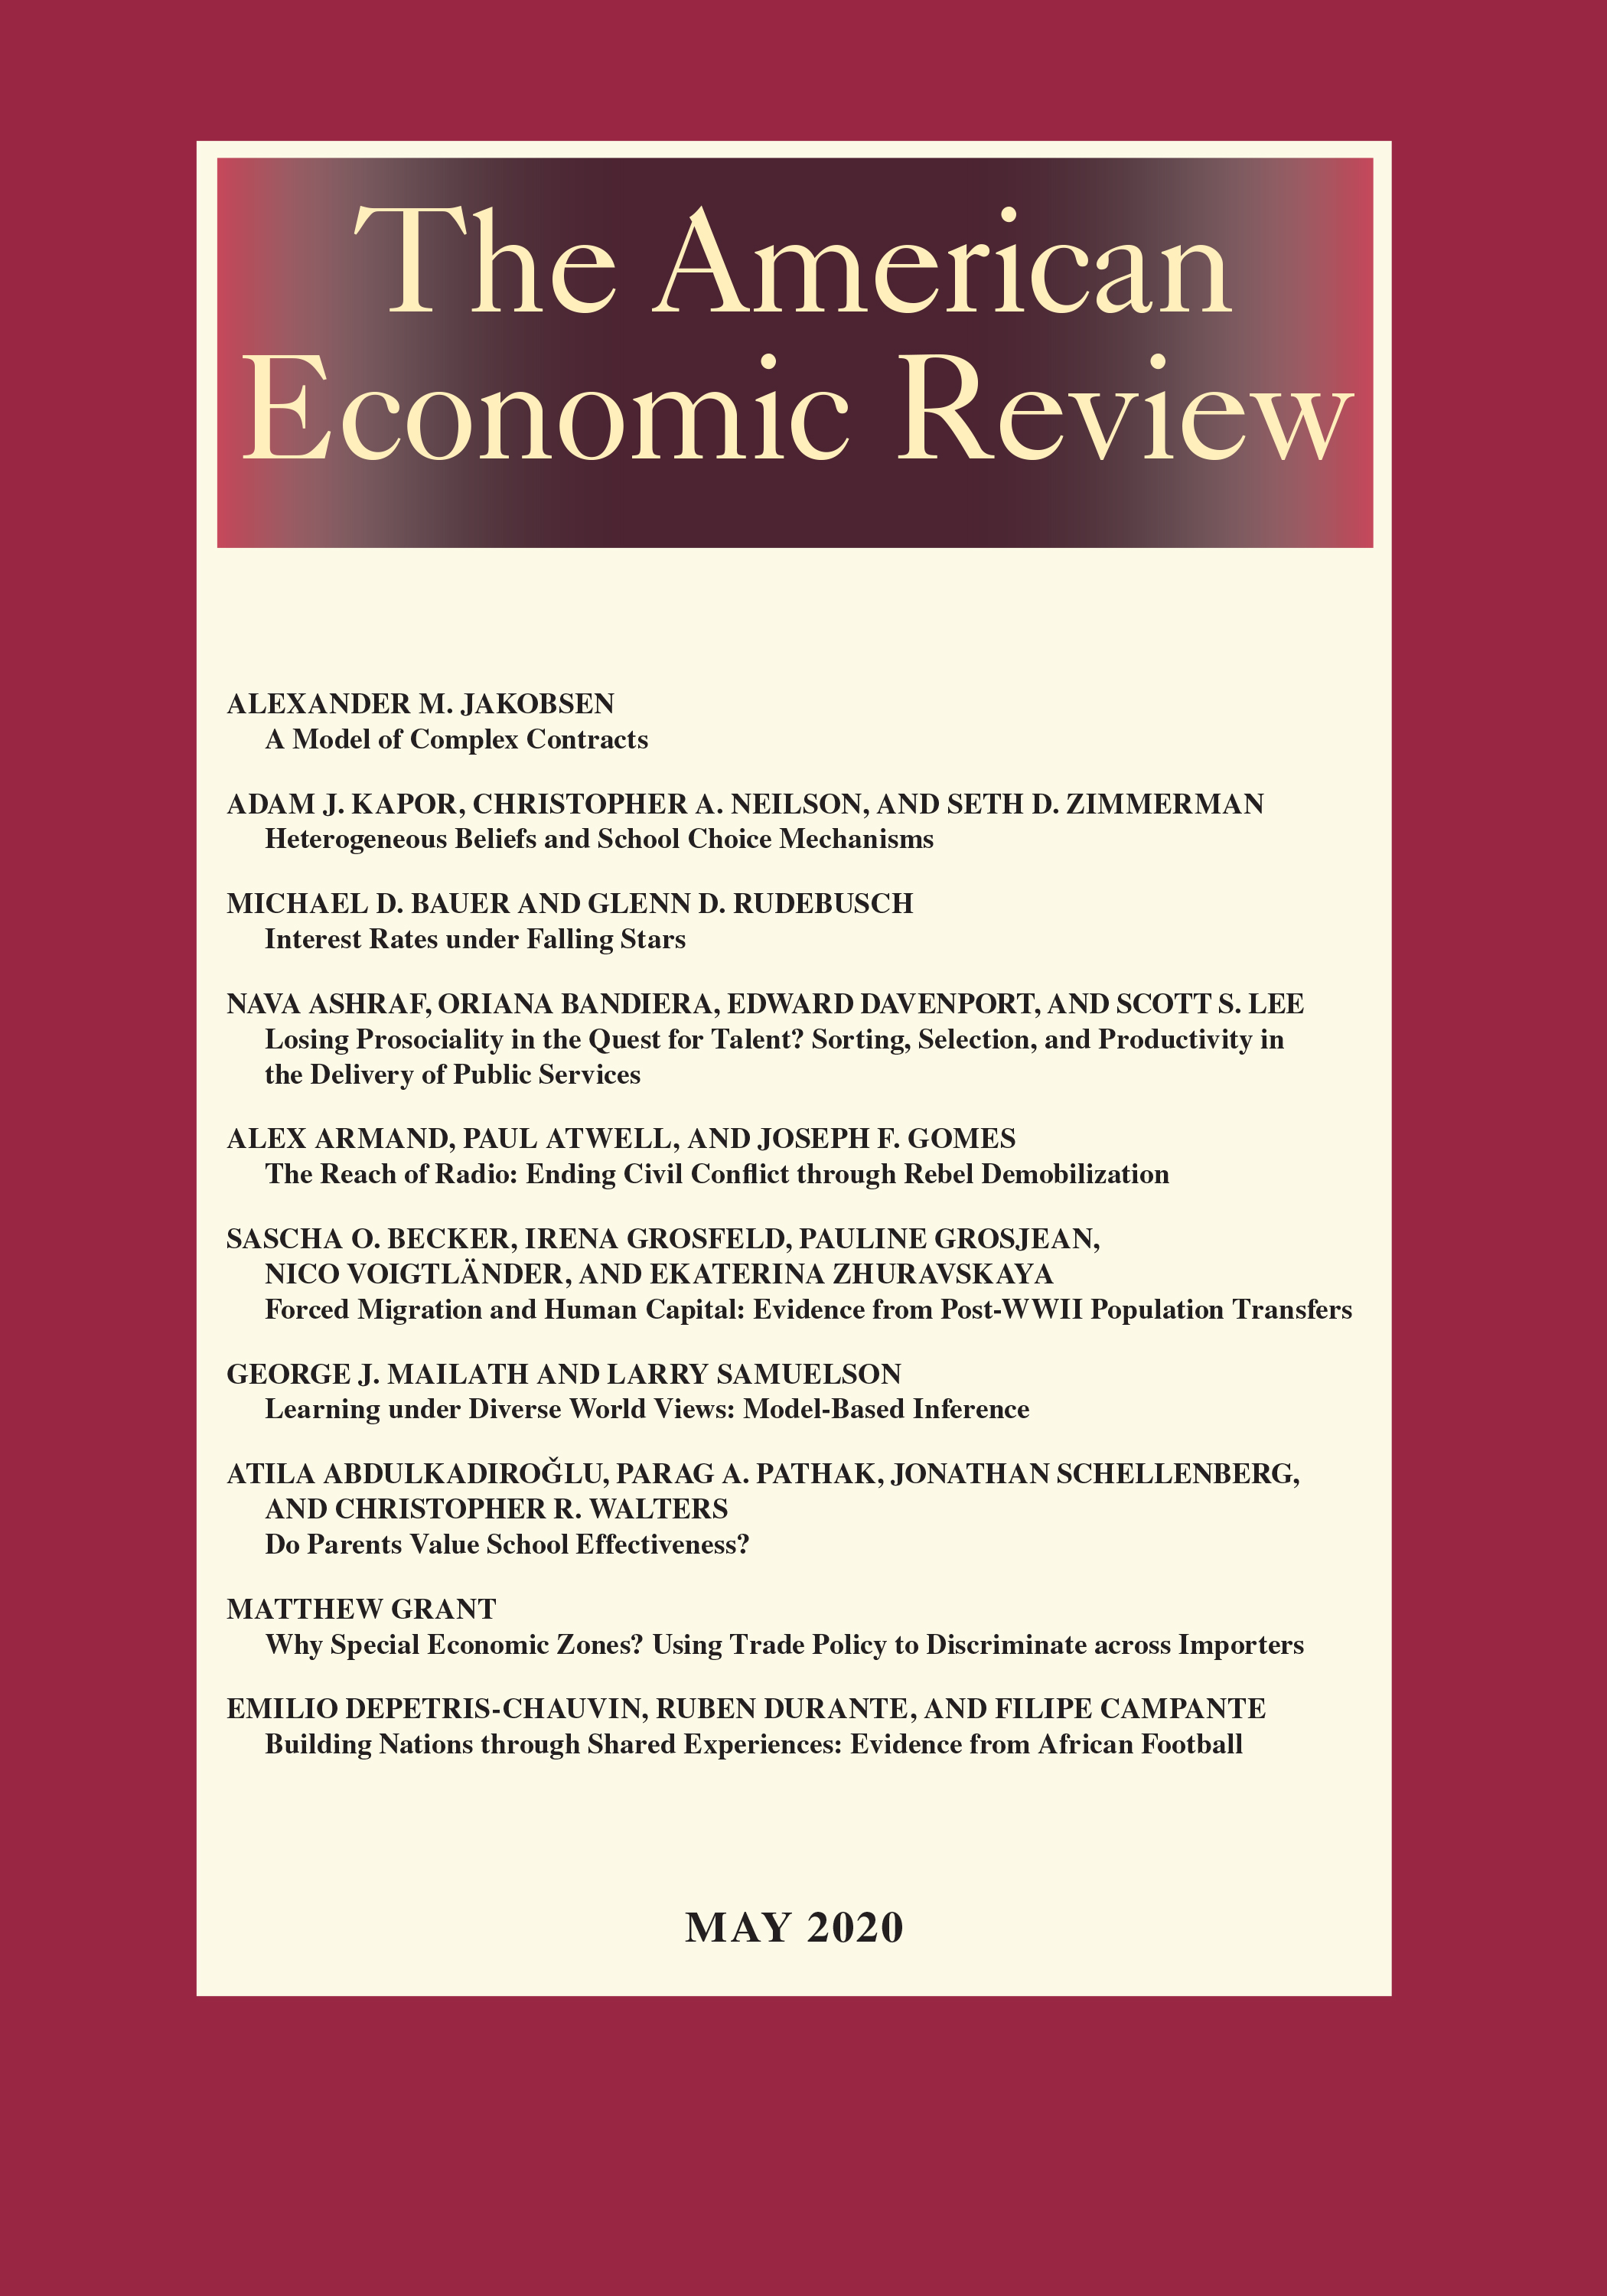 American Economic Review Vol. 110 No. 5 May 2020